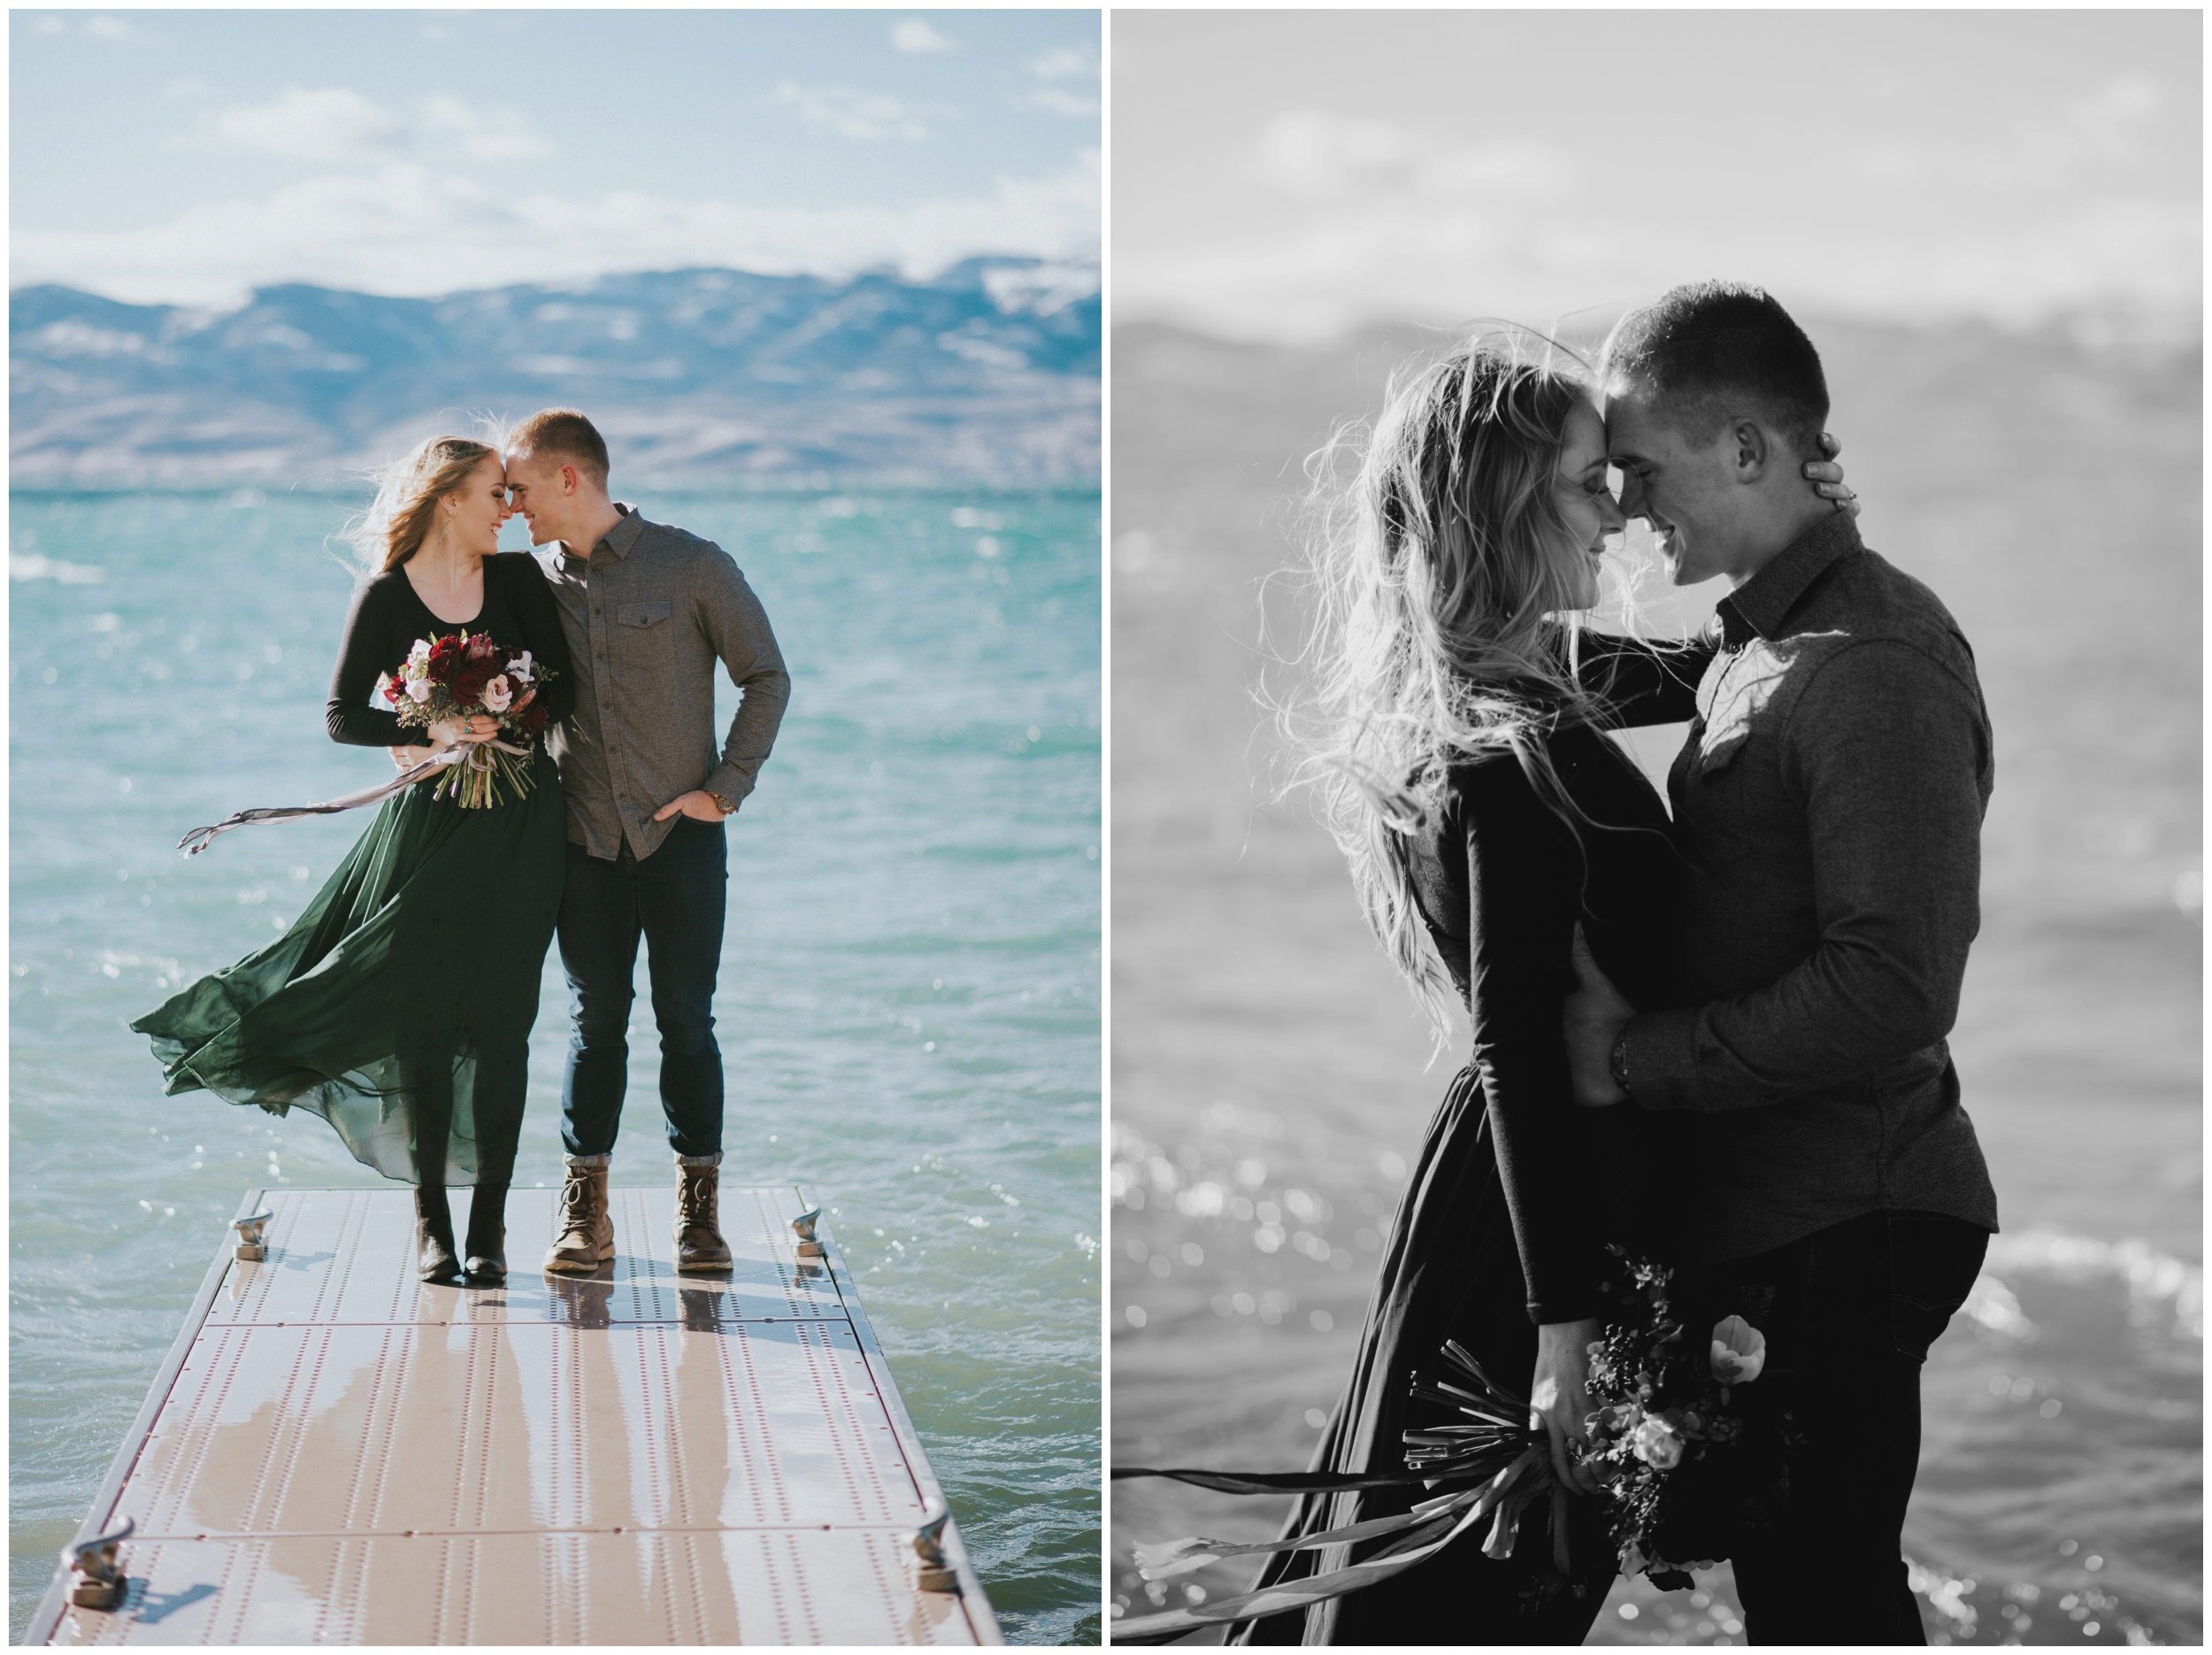 Couple holding each other on a dock with mountains in the background and blue water surrounding them  | Wedding Photographer Bear Lake Utah www.riversandroadsphotography.com